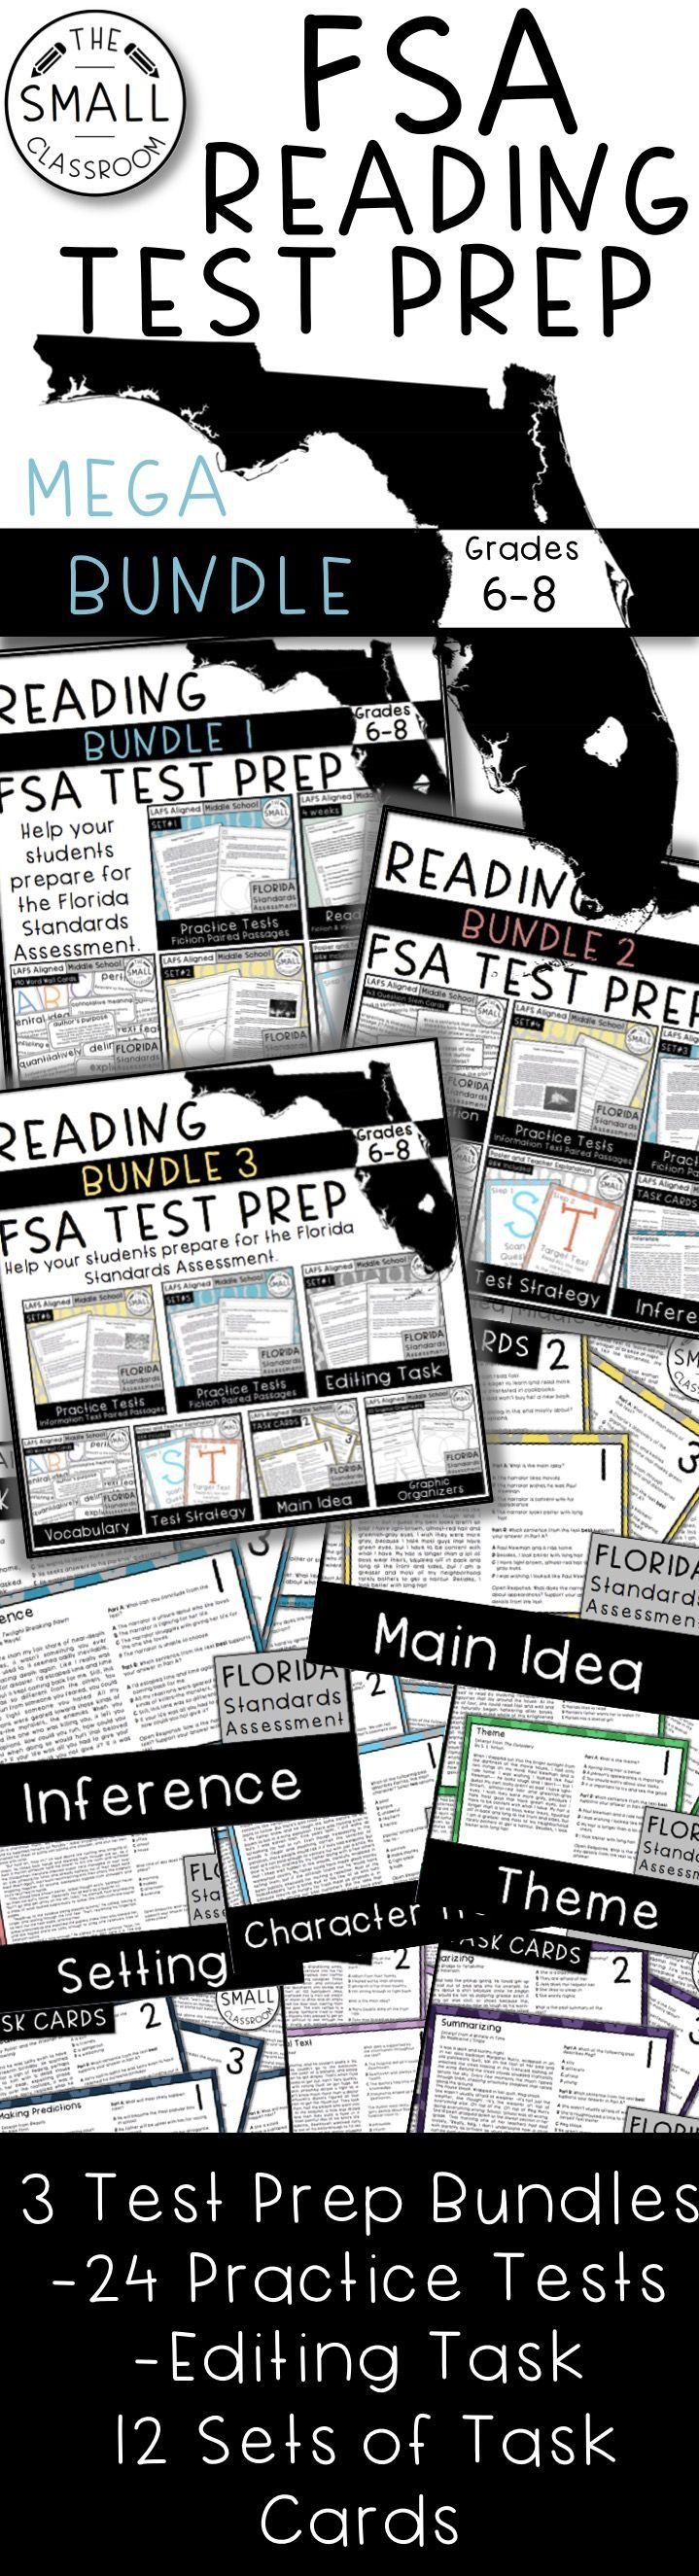 FSA TEST PREP Bundle. 24 Practice Tests. Paired Passages. Editing Task. Reading Review. Word Wall Vocabulary.  12 Sets of Task Cards. Inference, Main Idea, Summary, Theme, and more. Everything you need to prepare of the FSA. (Florida Standards Assessment)